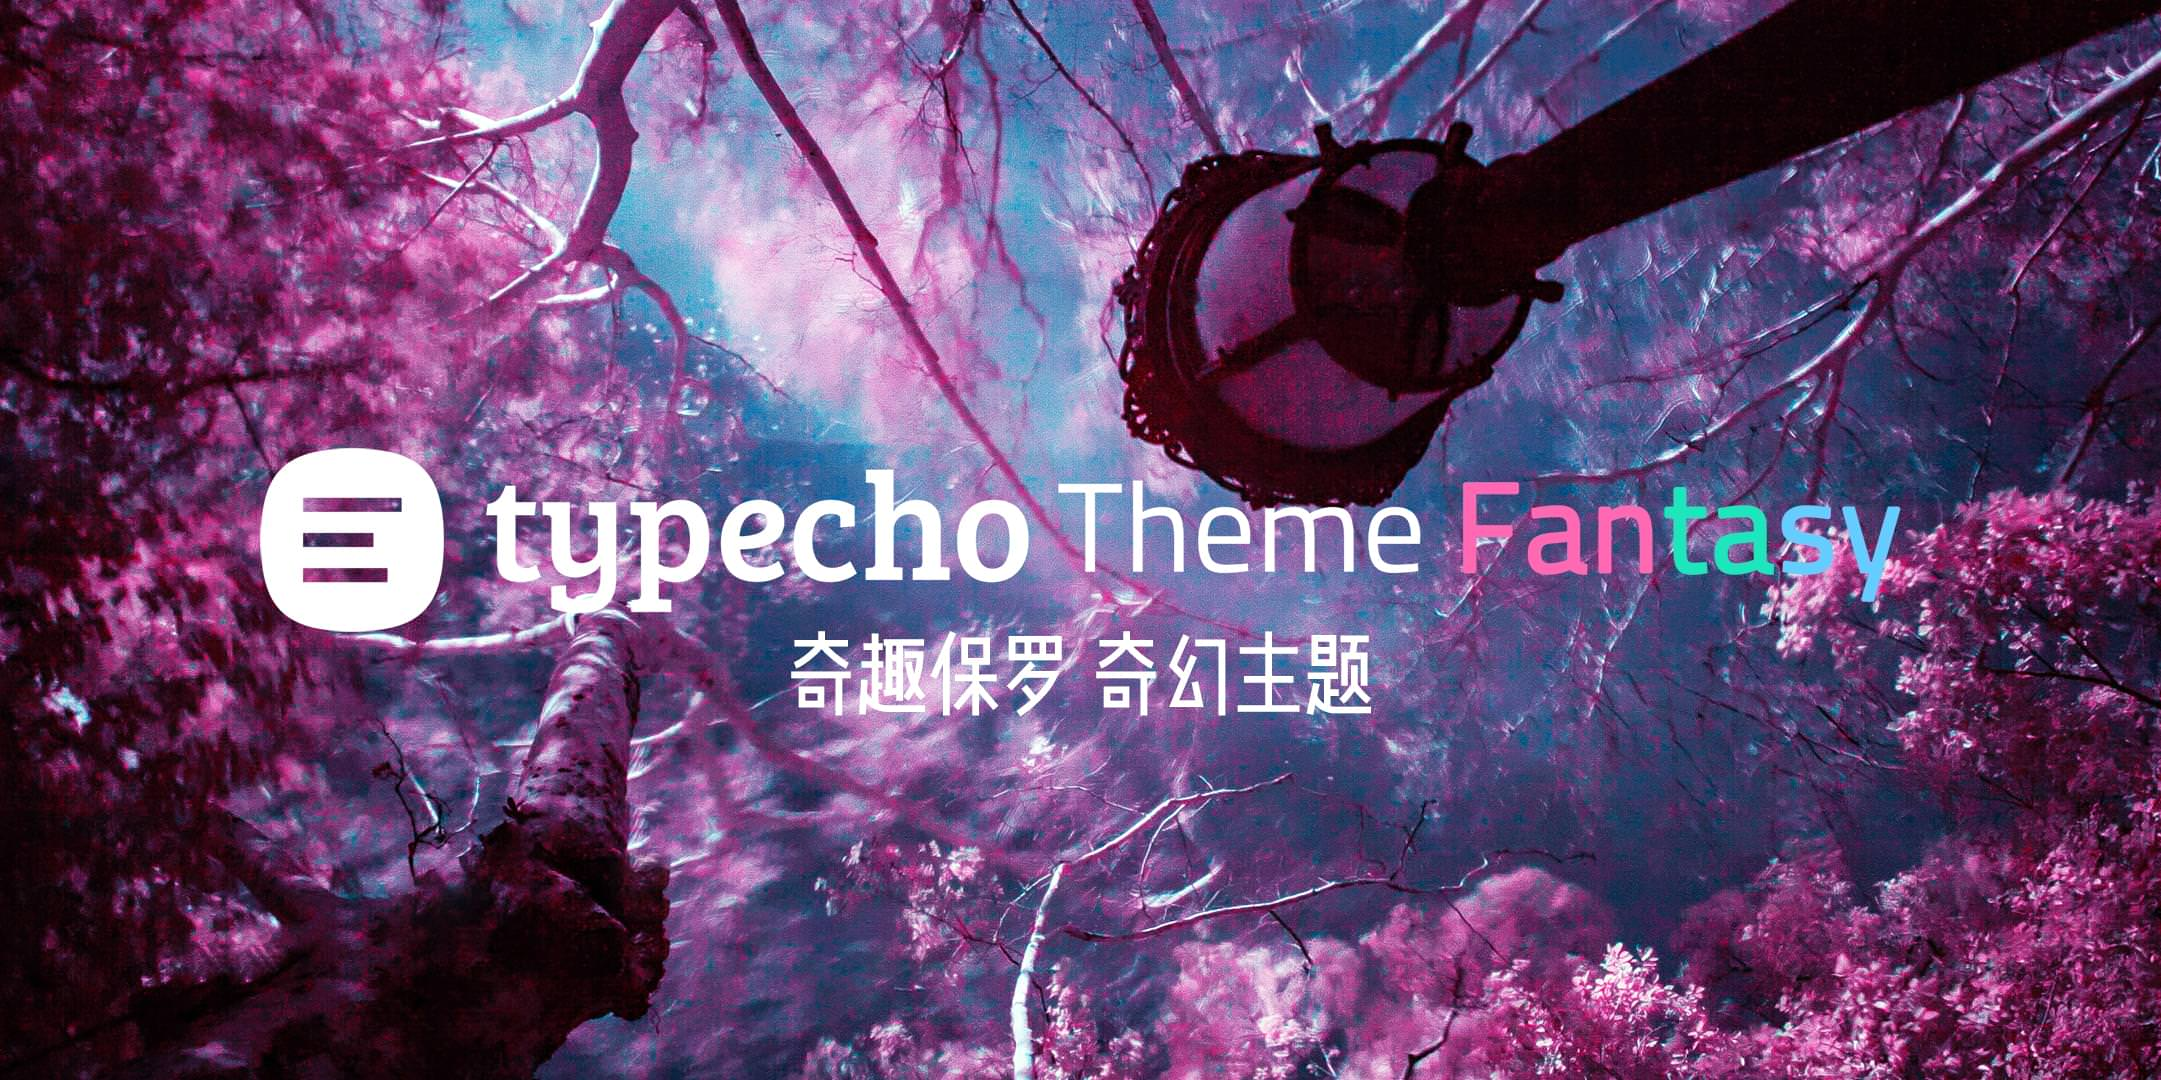 Typecho Theme Fantasy Render Poster - Web Based Version